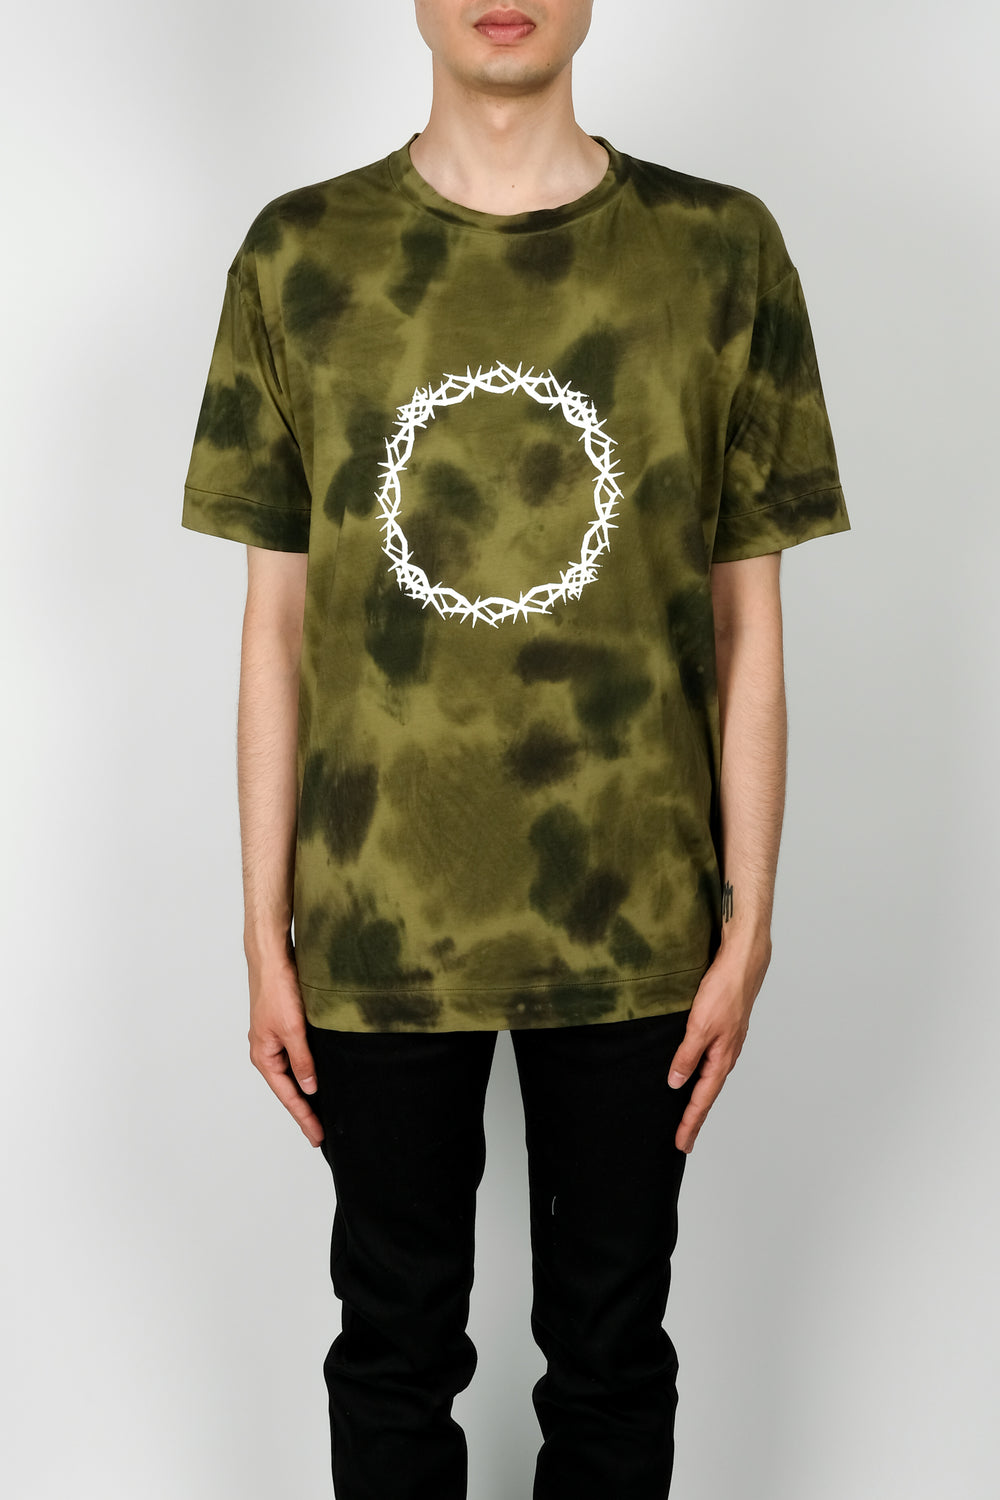 Alyx Treated Relentess Collection S/S Tee In Camo